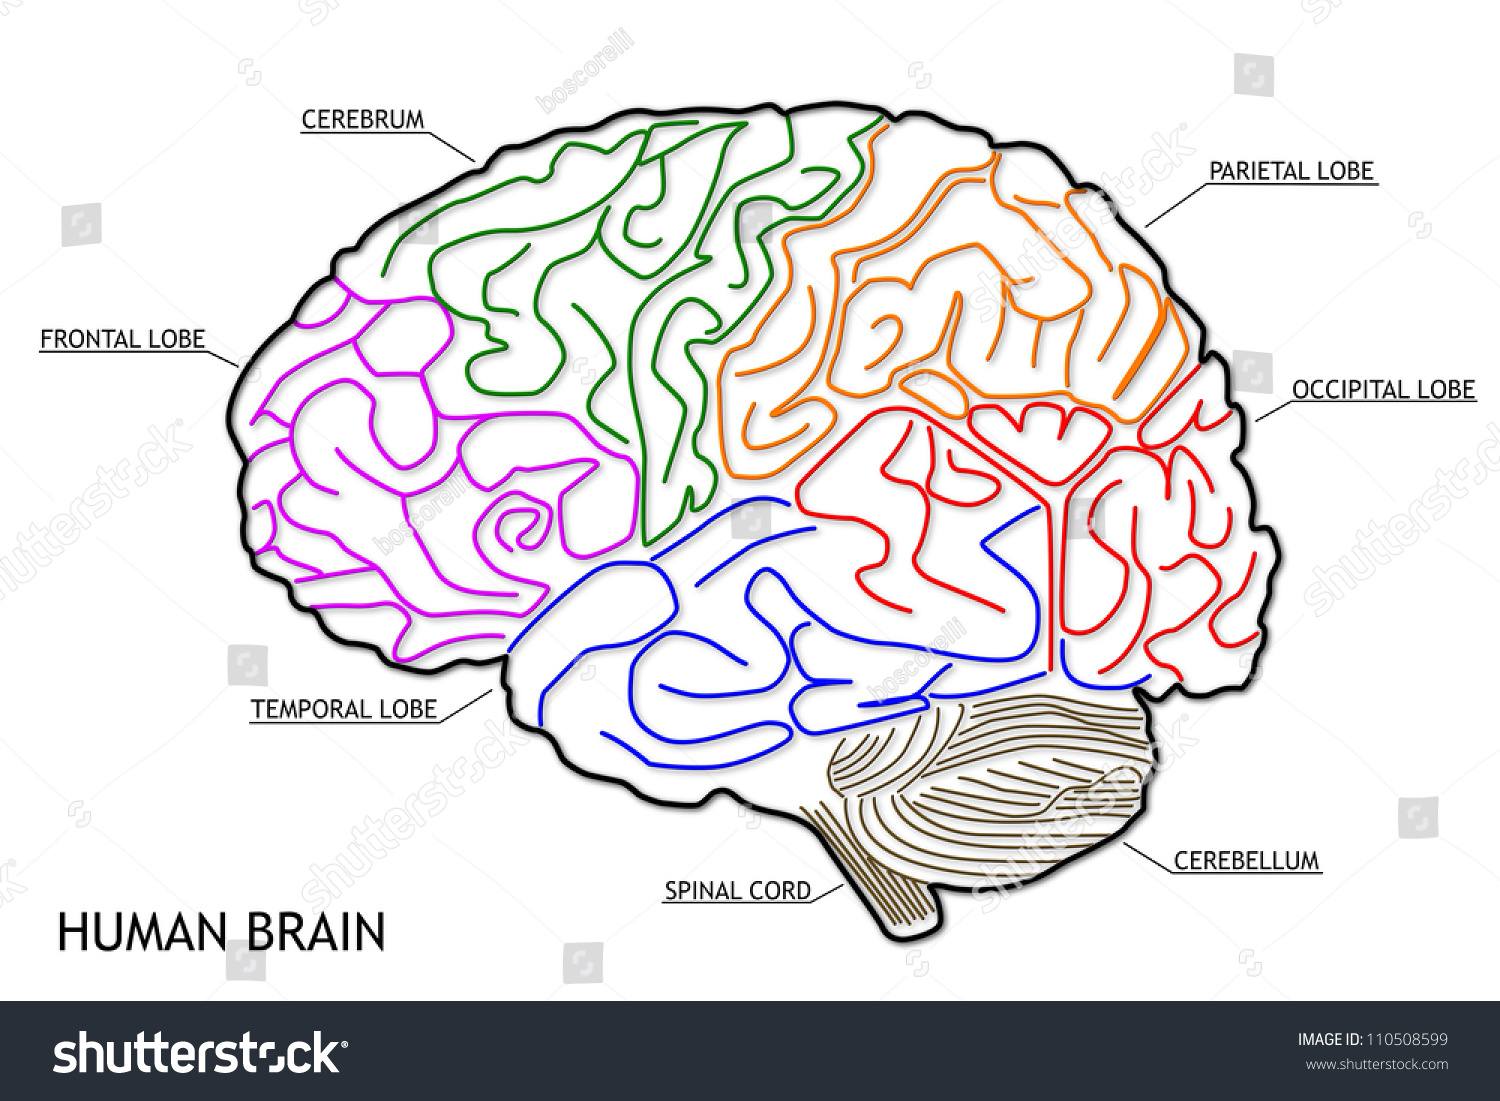 Human Brain Structure Stock Illustration 110508599 - Shutterstock